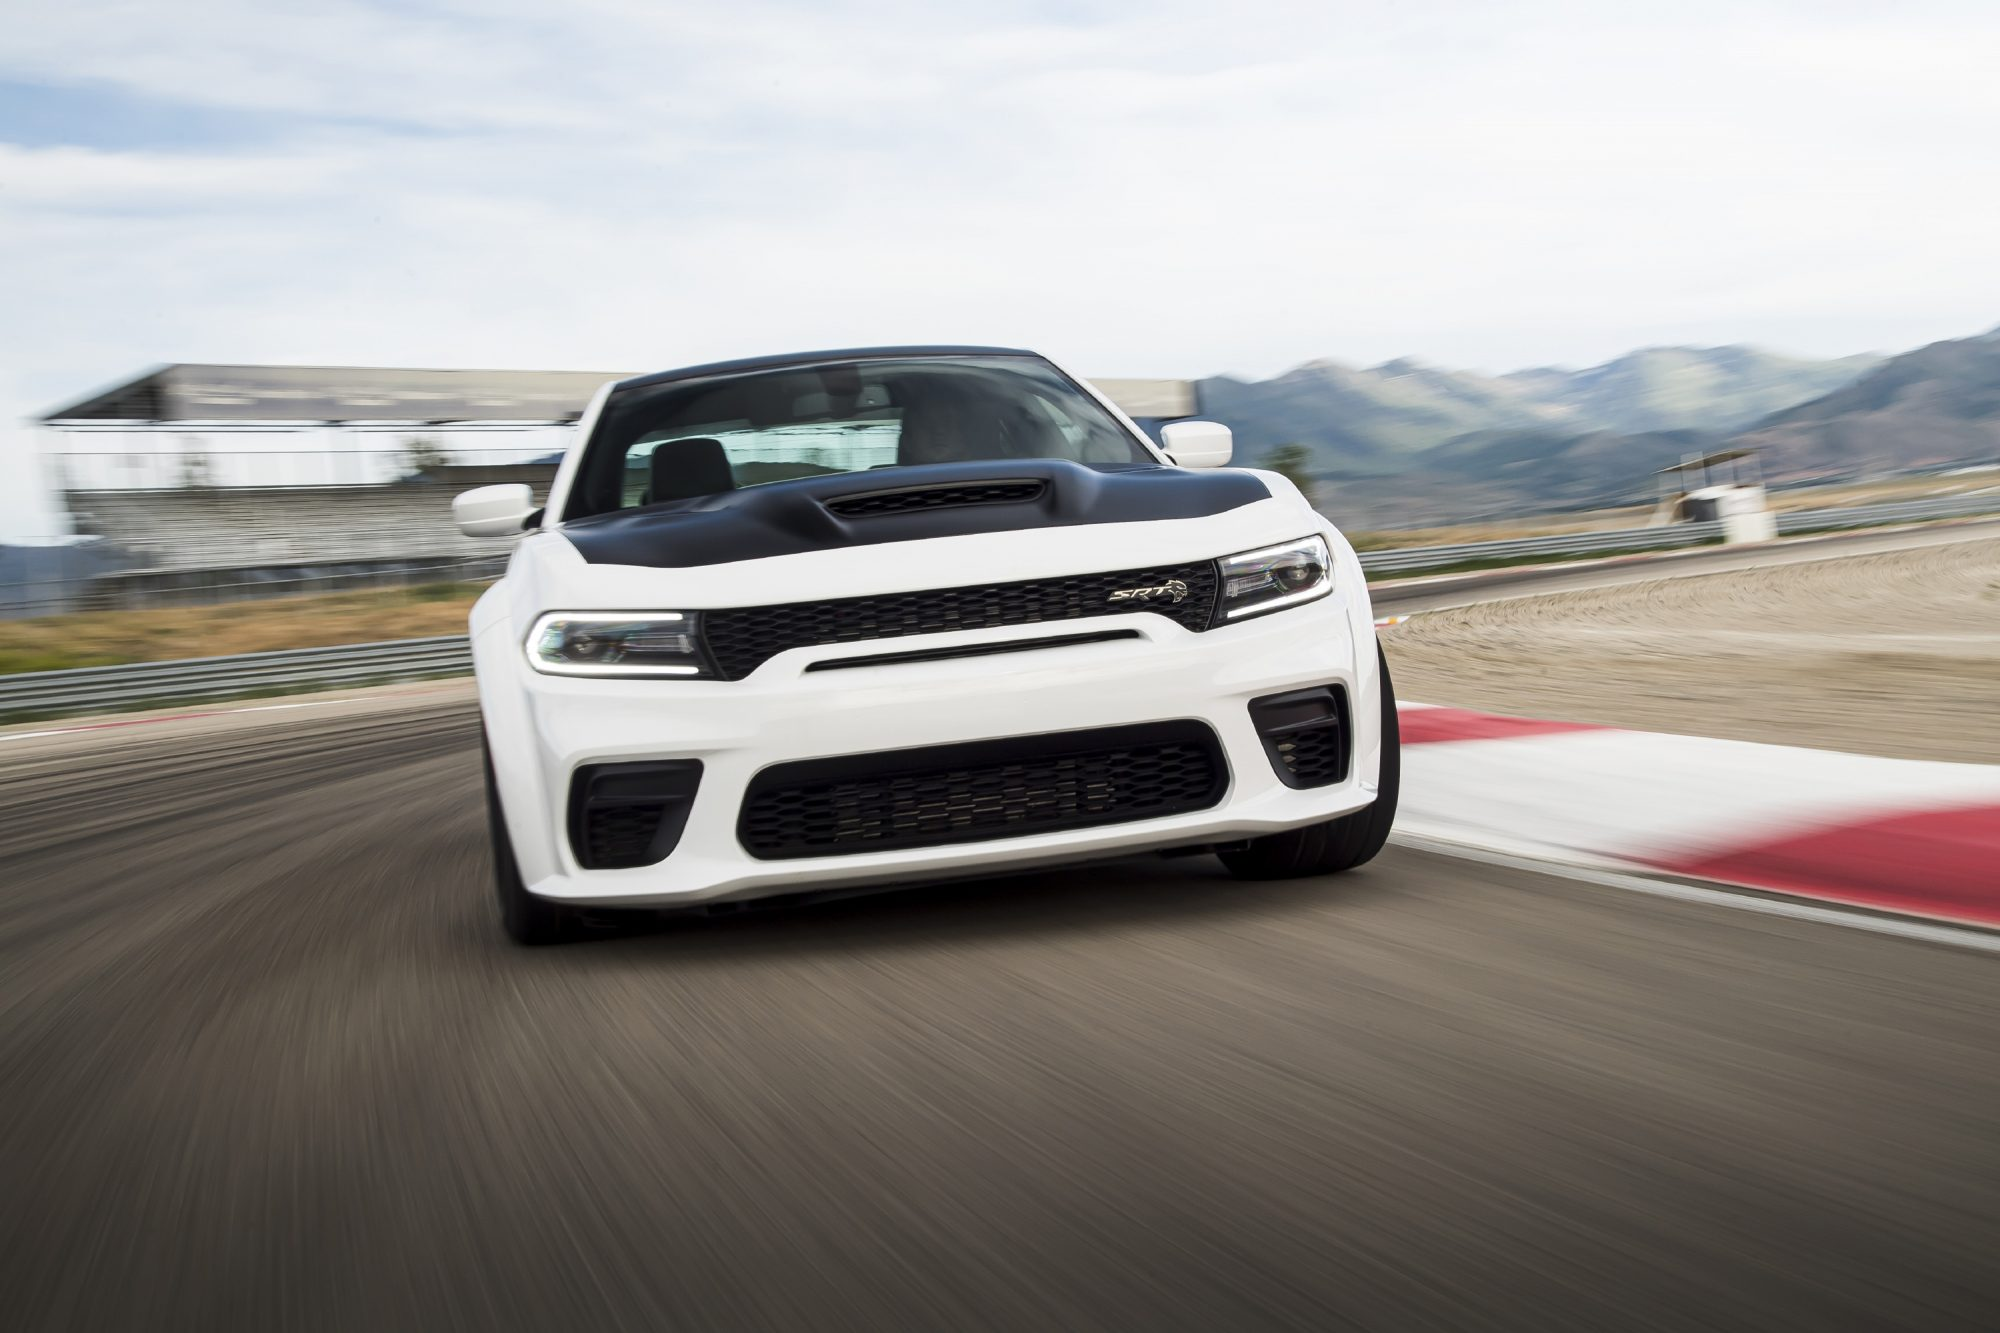 Dodge Charger SRT Hellcat Redeye - 2020 - front-face / face avant - on track / sur circuit